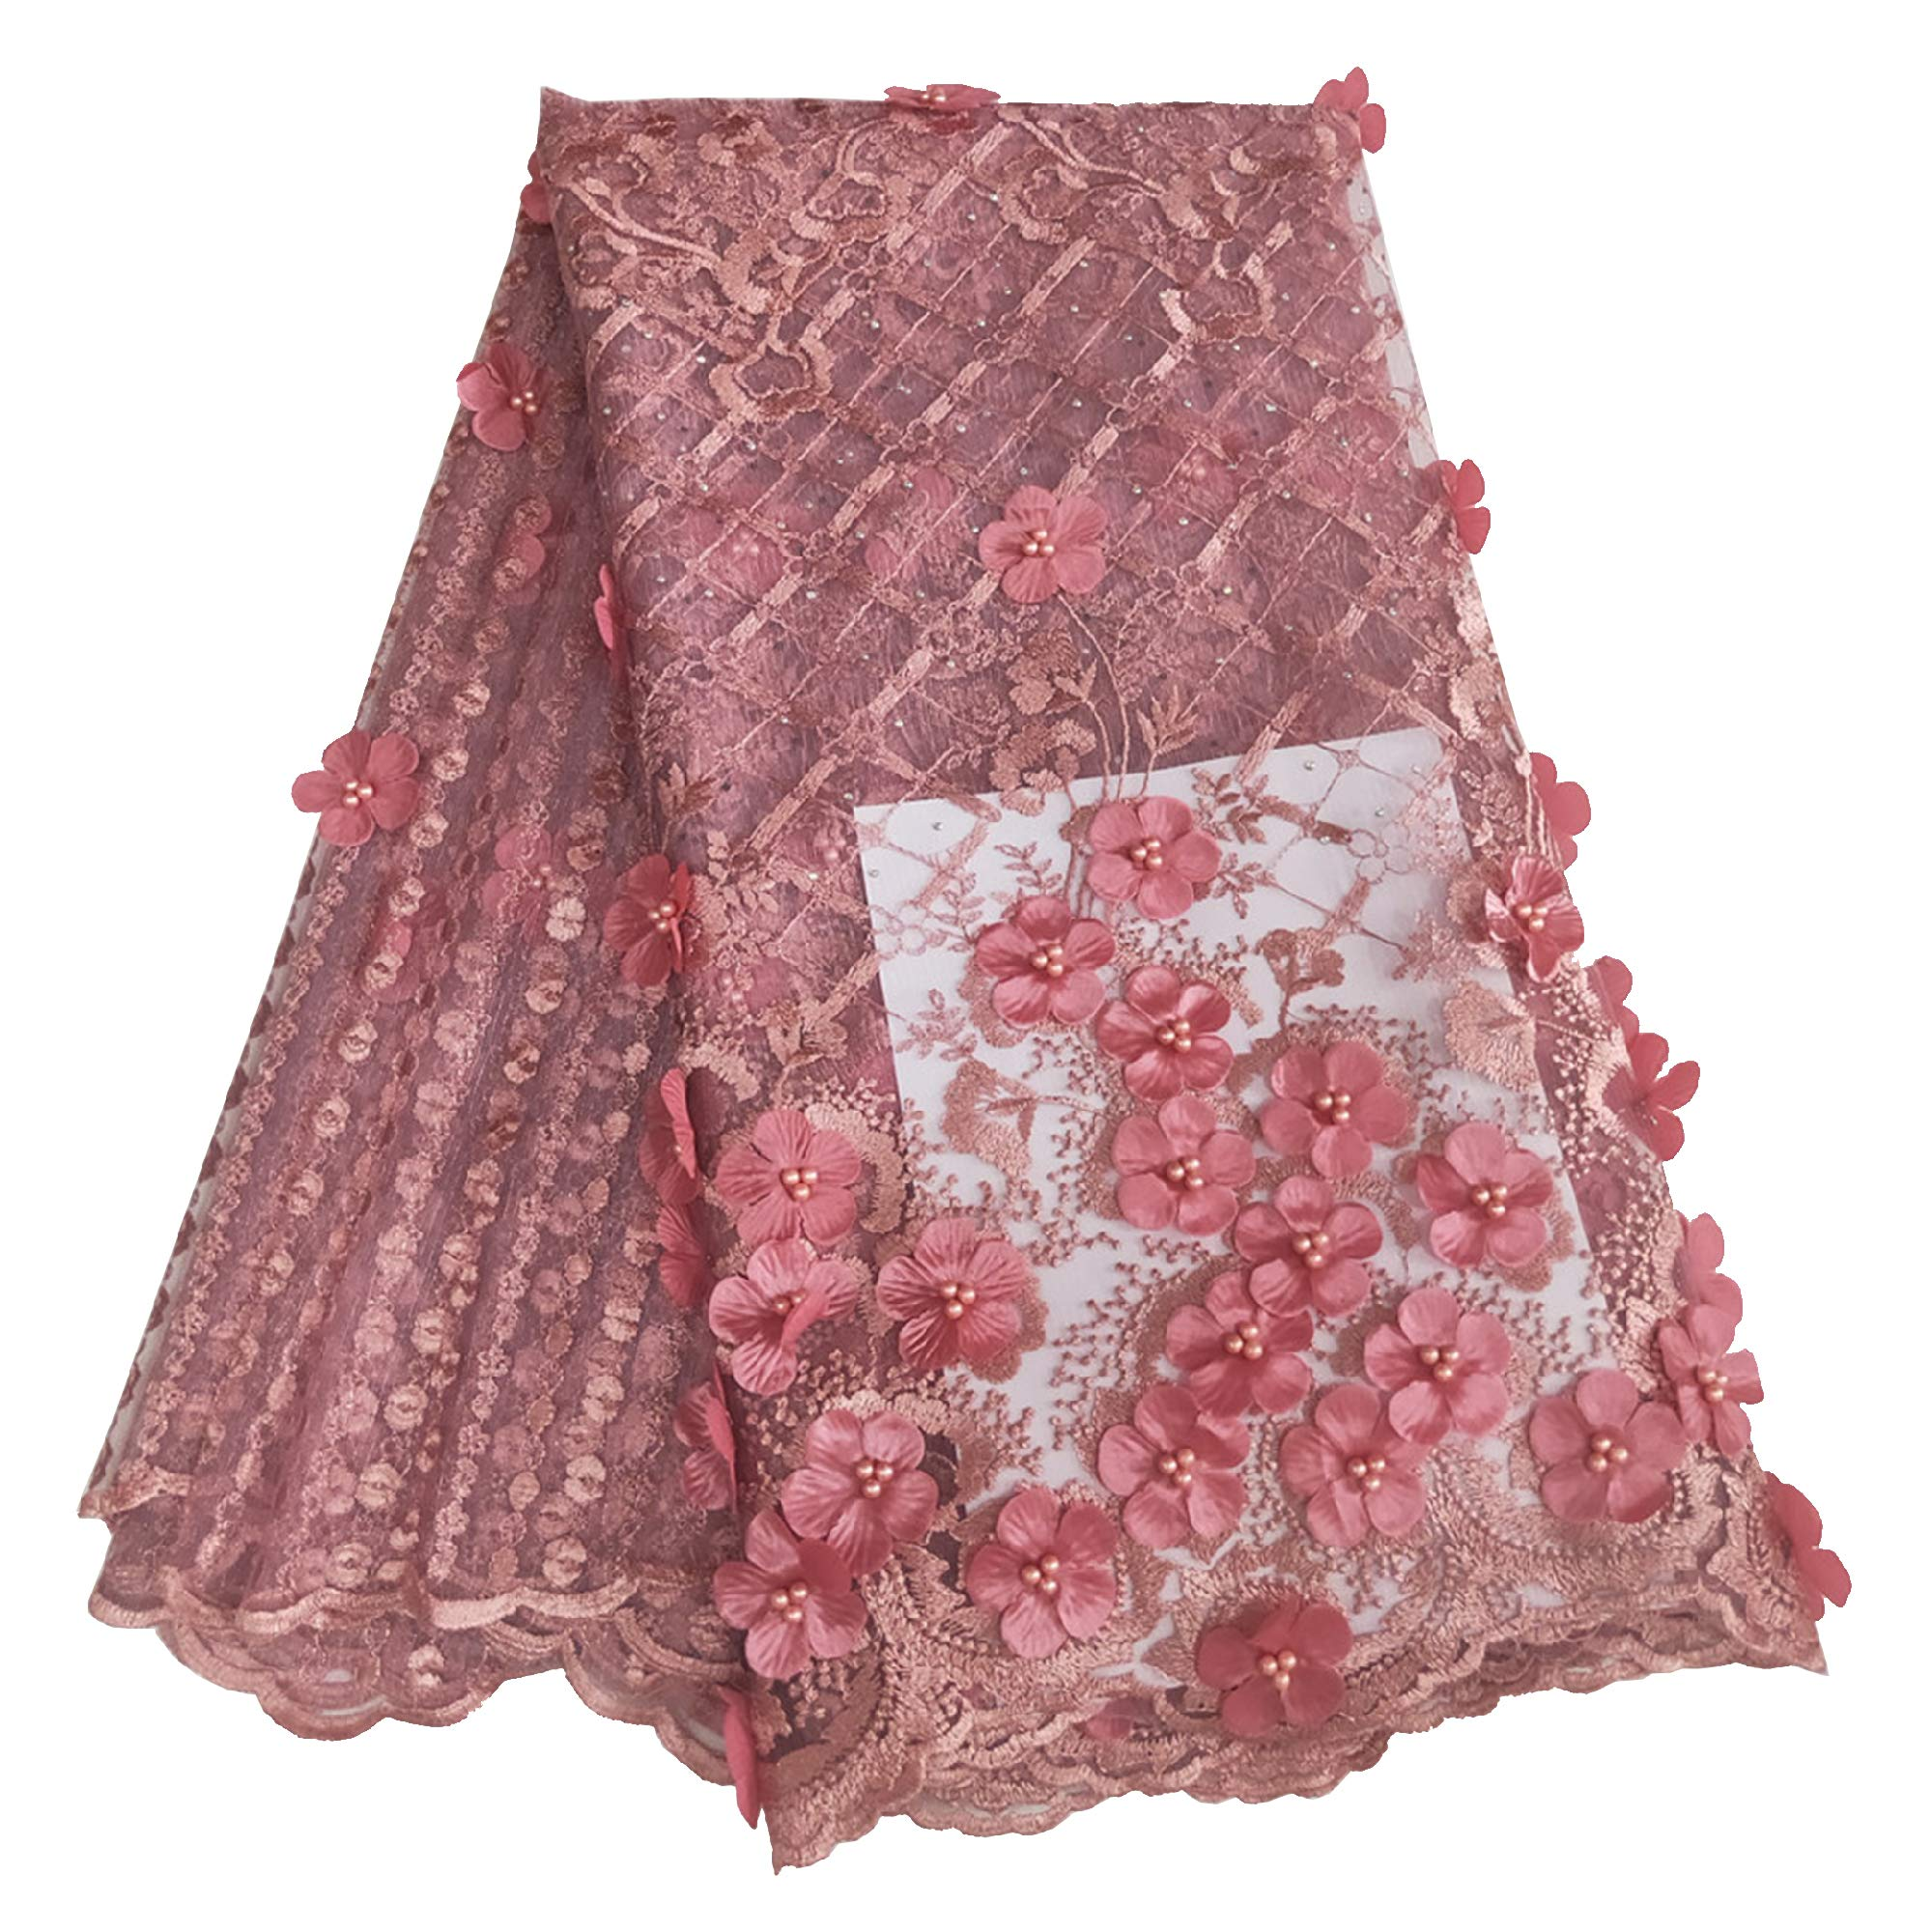 Milylace 3D Flower African Lace Fabric 5 Yards Nigerian French Tulle Lace Fabric with Beads and Stones for Wedding Dresses